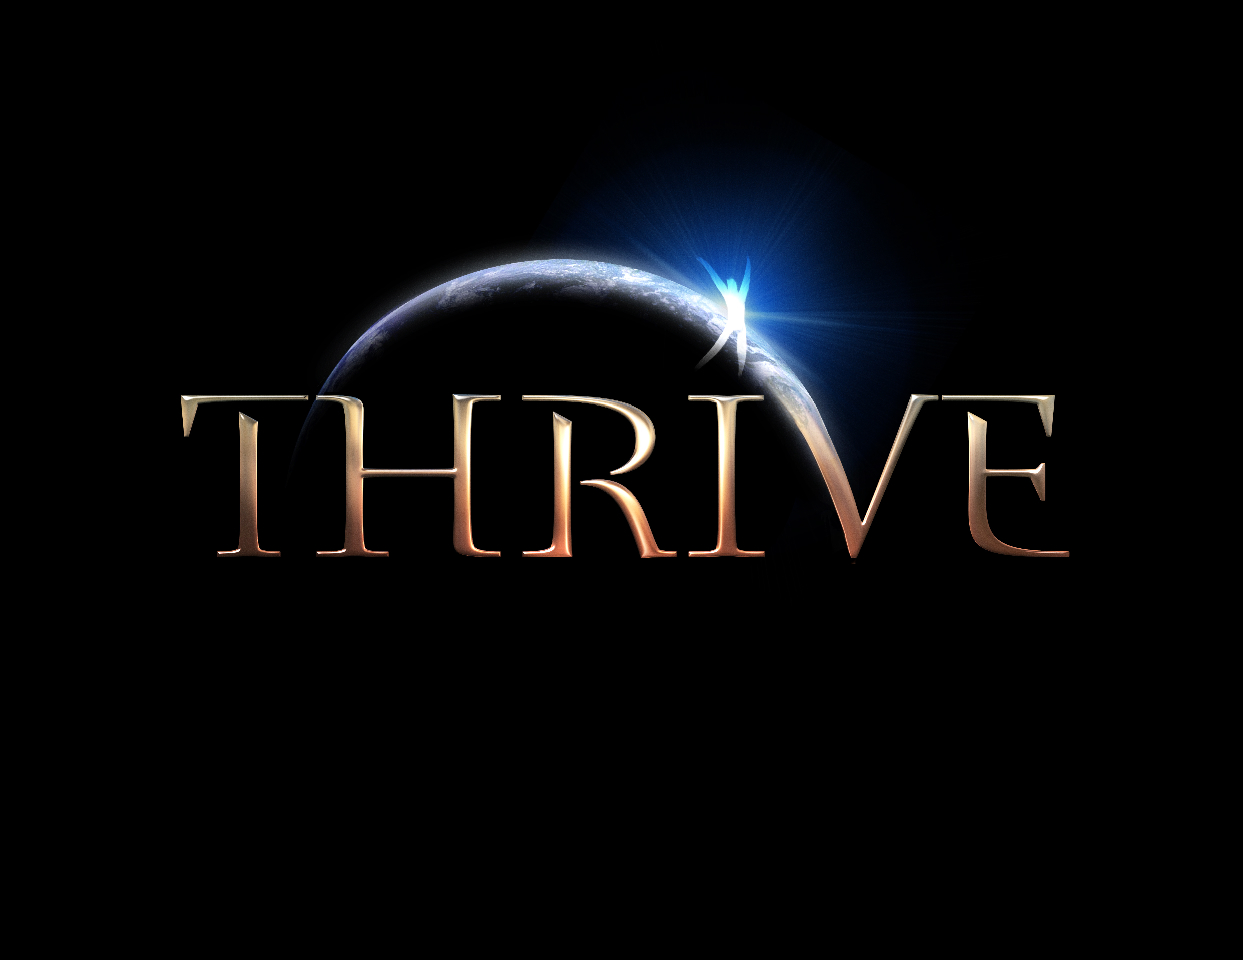 THRIVE: WHAT ON EARTH DOES IT OFFER?